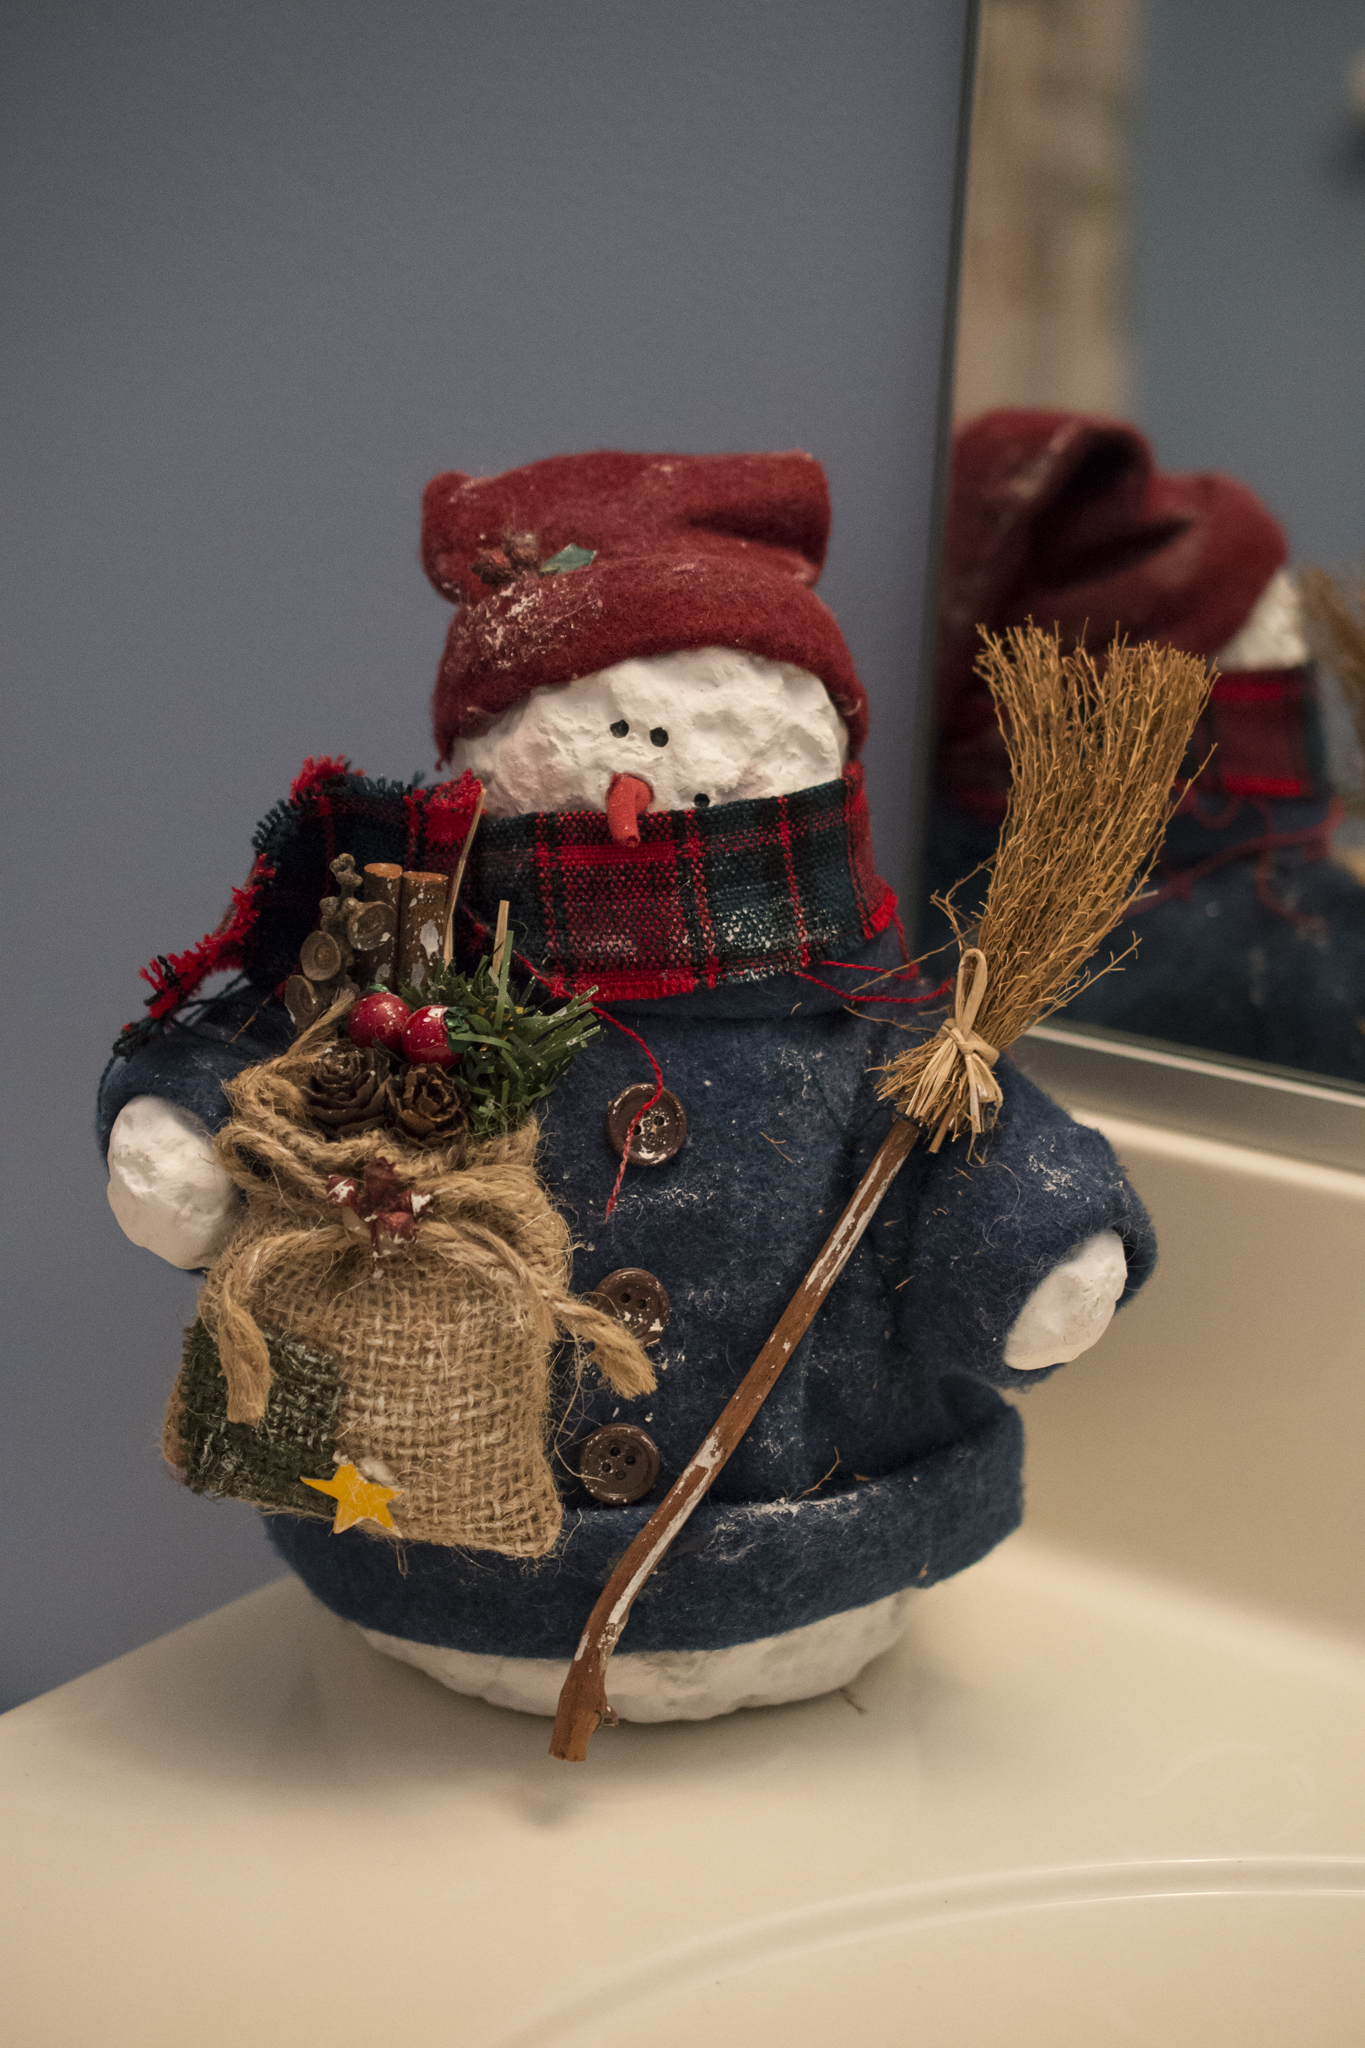 Yep, a snowman is even in the bathroom